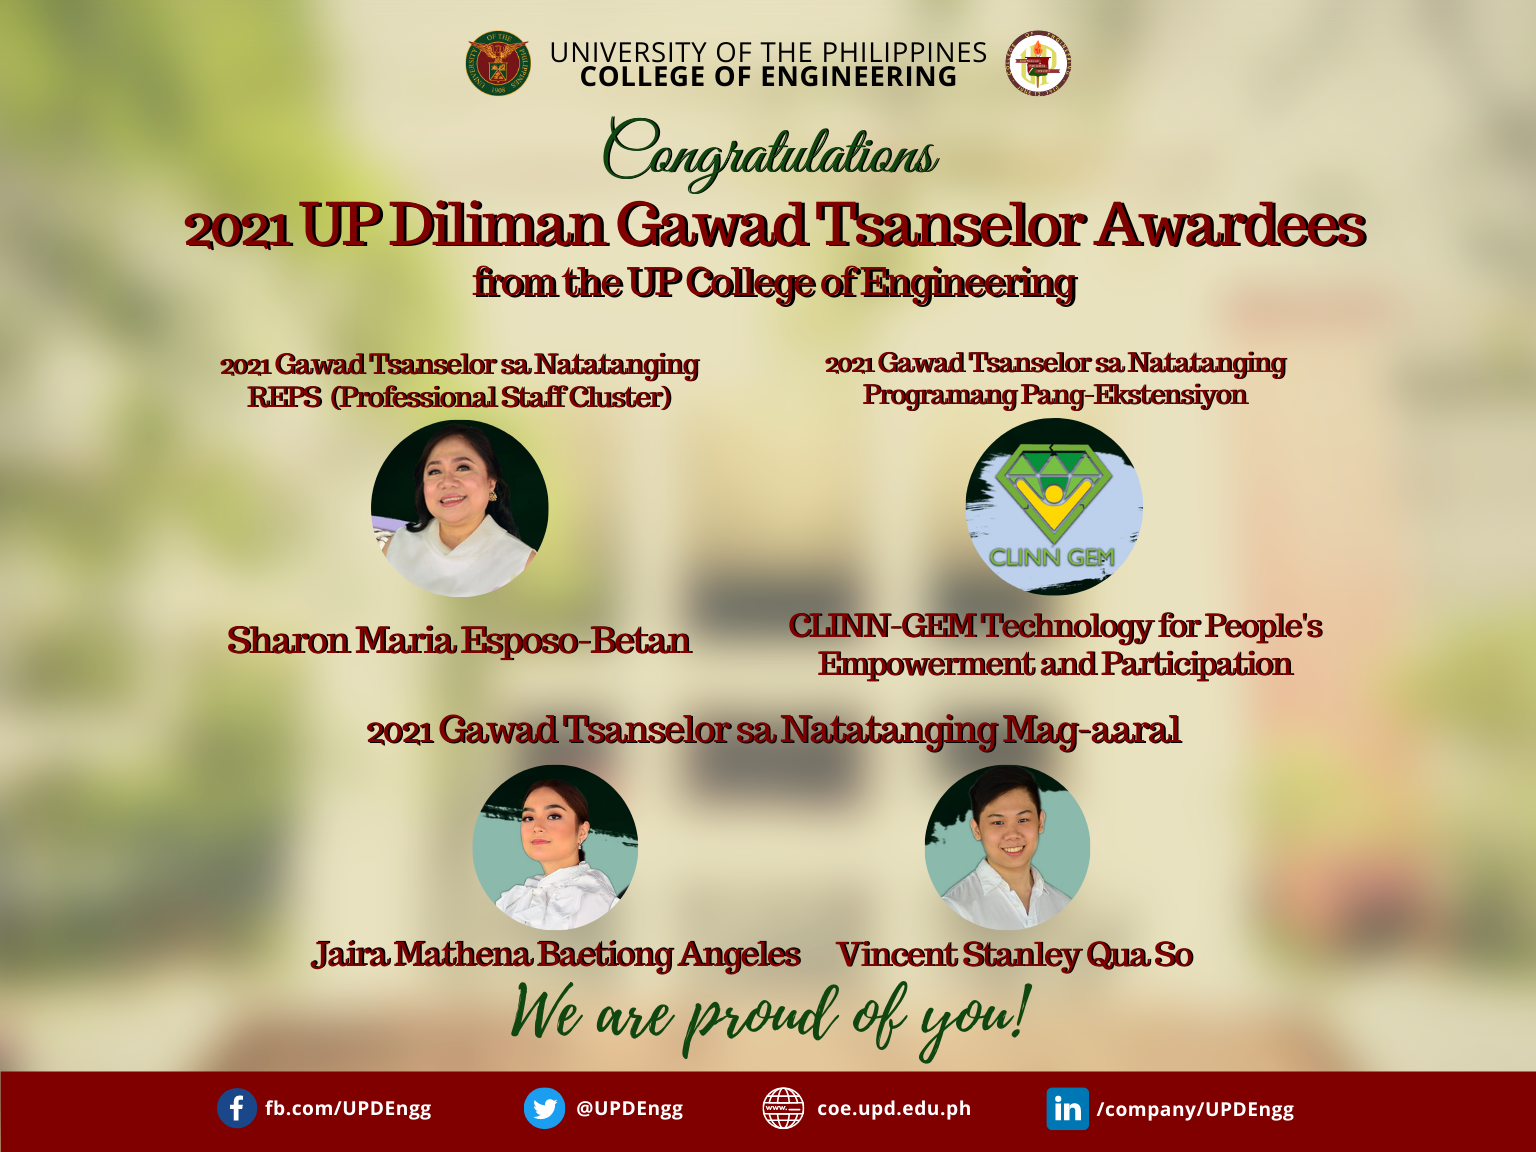 2021 UP Diliman Gawad Tsanselor Awardees from the UP College of Engineering